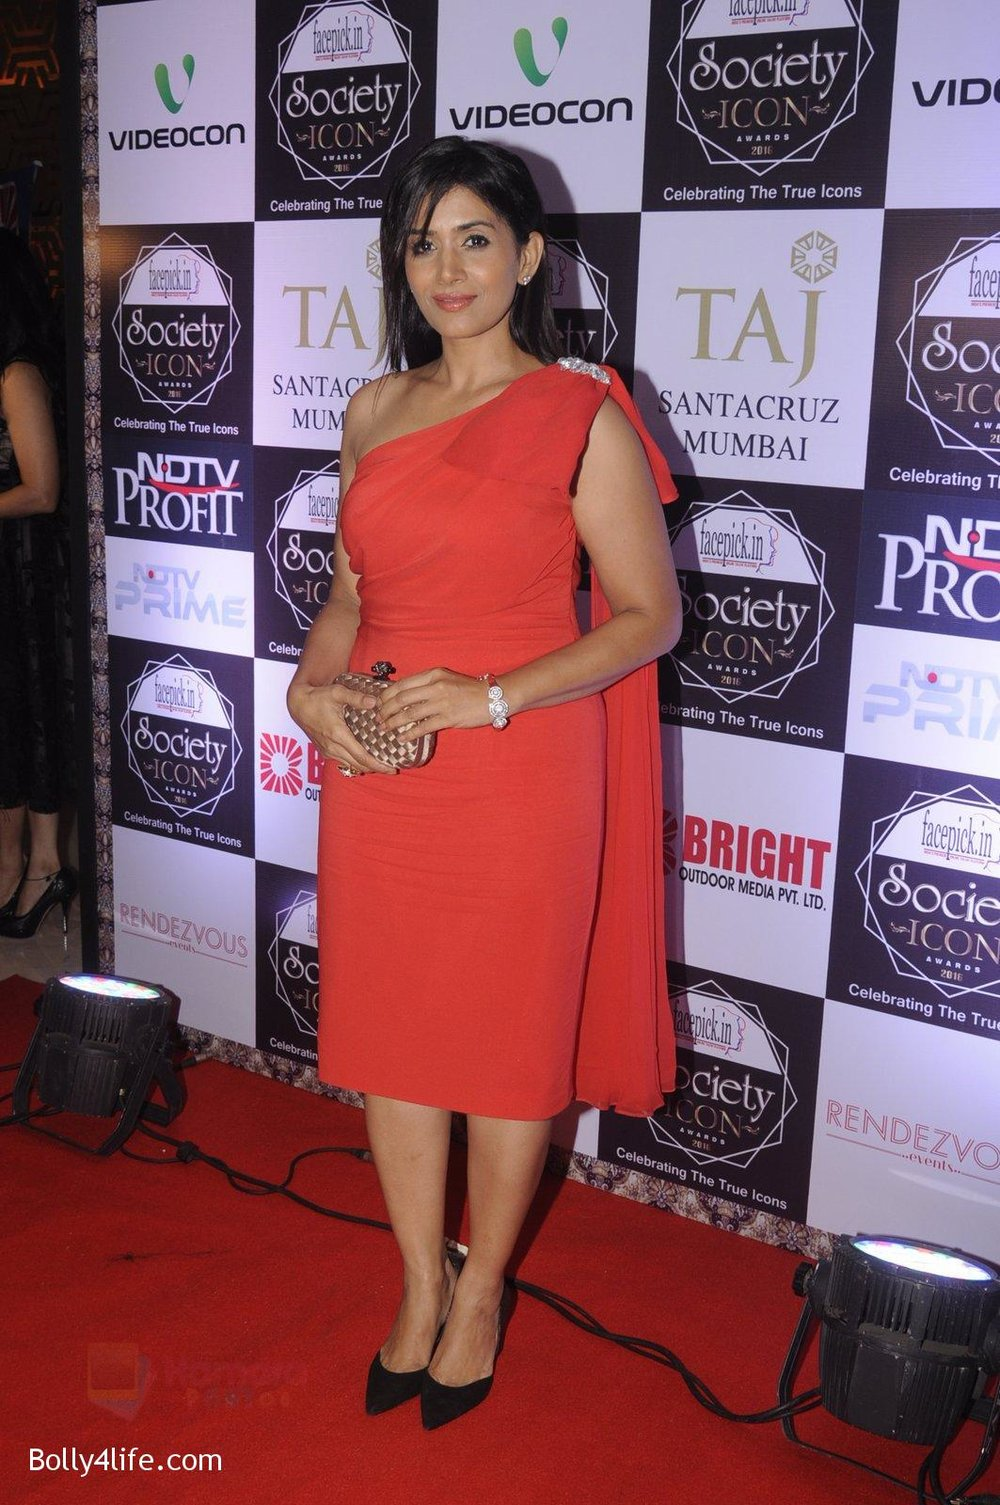 Sonali-Kulkarni-at-Society-Icon-Awards-on-2nd-Oct-2016-33.jpg